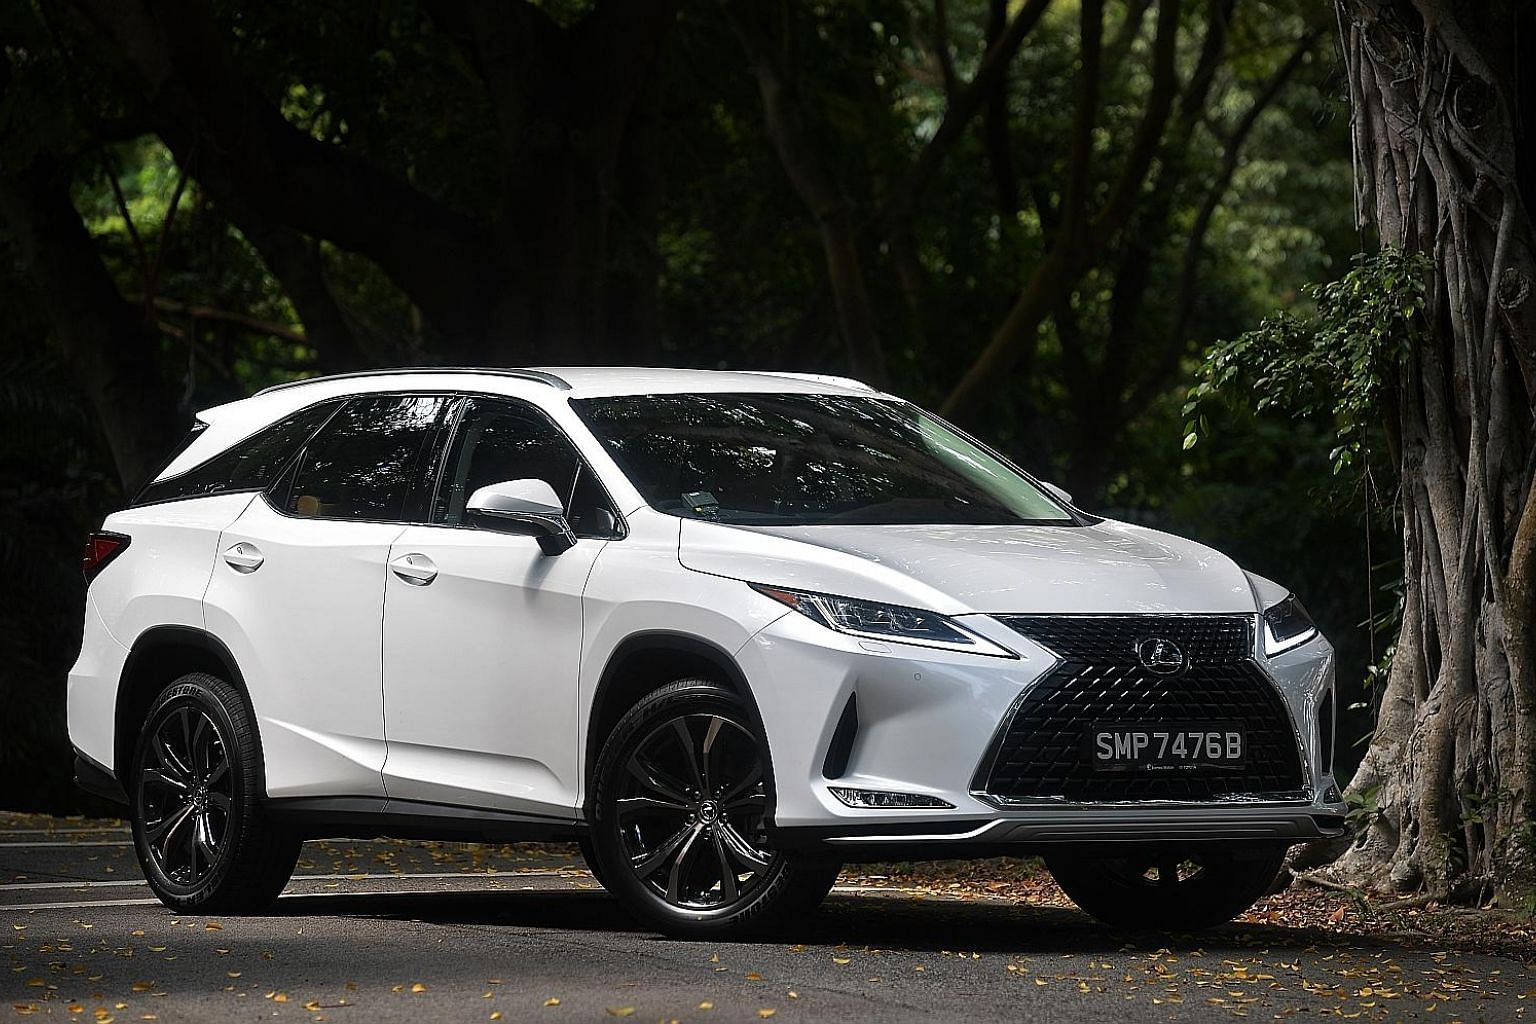 The Lexus RX350L boasts a host of new features, including an intelligent high beam and safety systems such as lane-keeping, rear cross traffic alert and blindspot monitor.